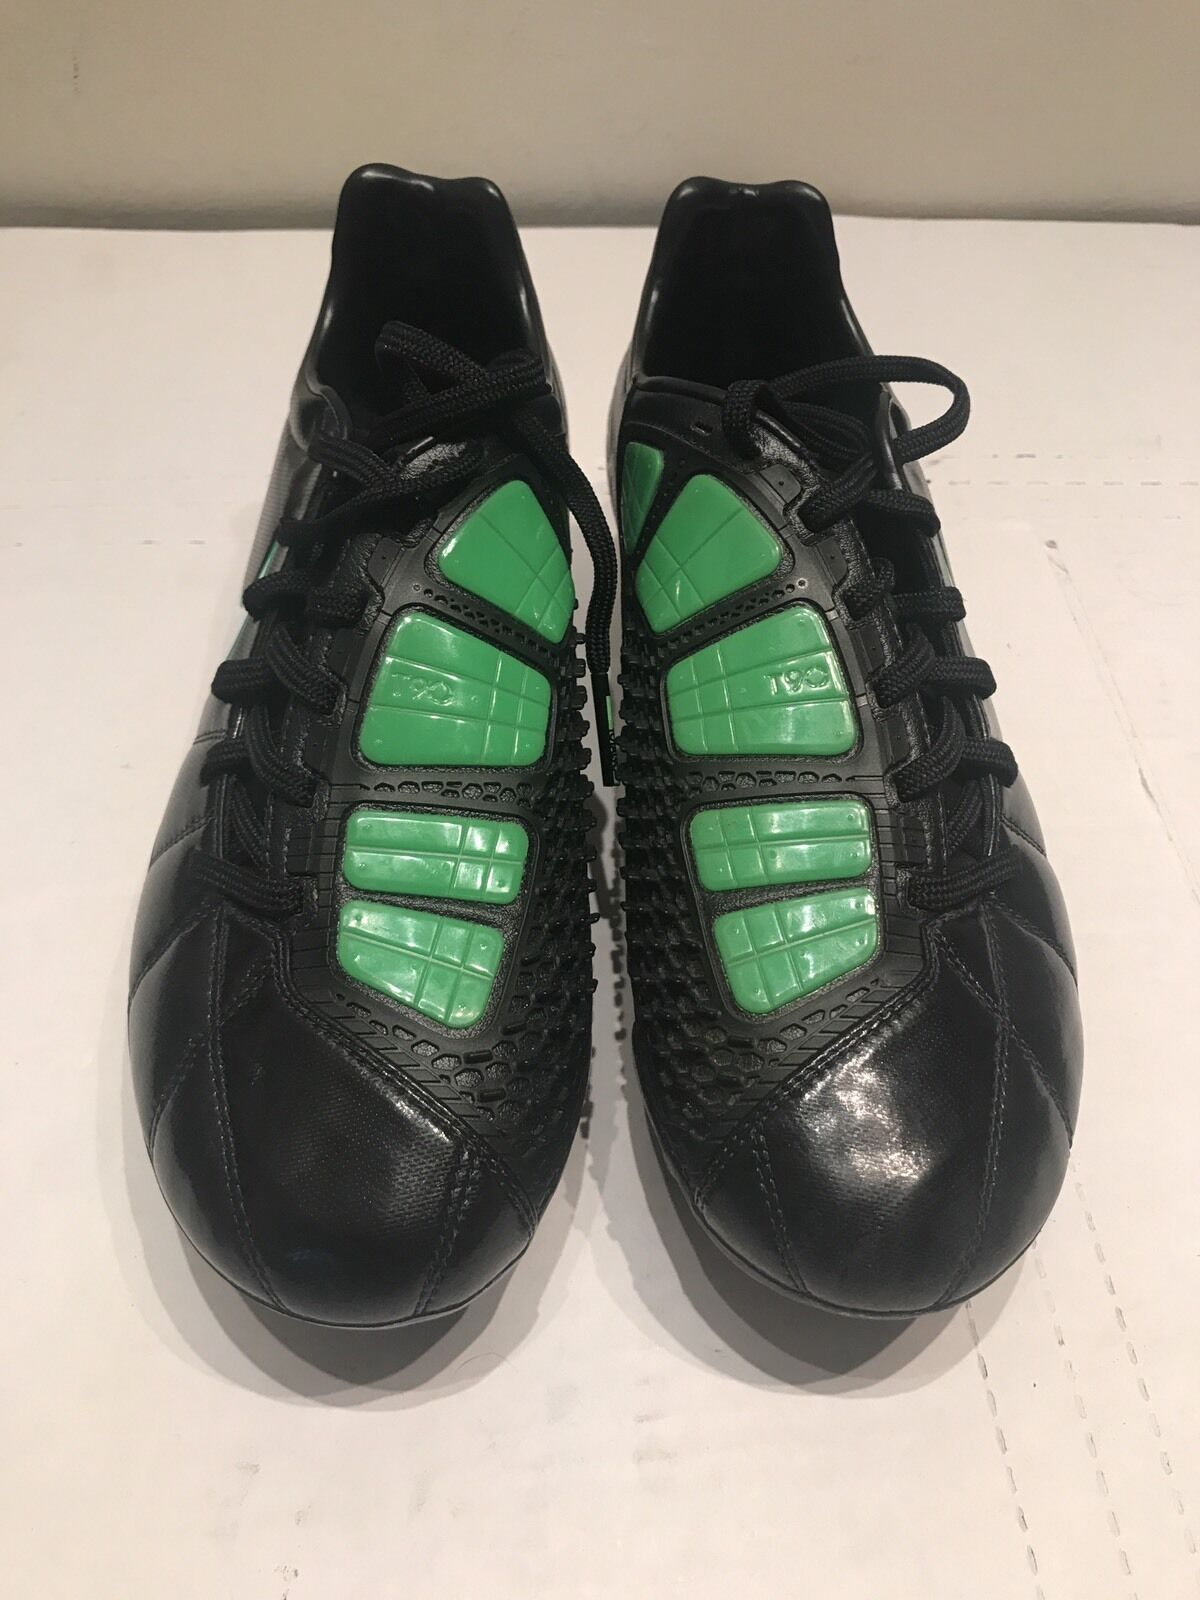 NIKE TOTAL 90 LASER III HYBRID Black/White/Electric Green Soccer Shoes Size 7